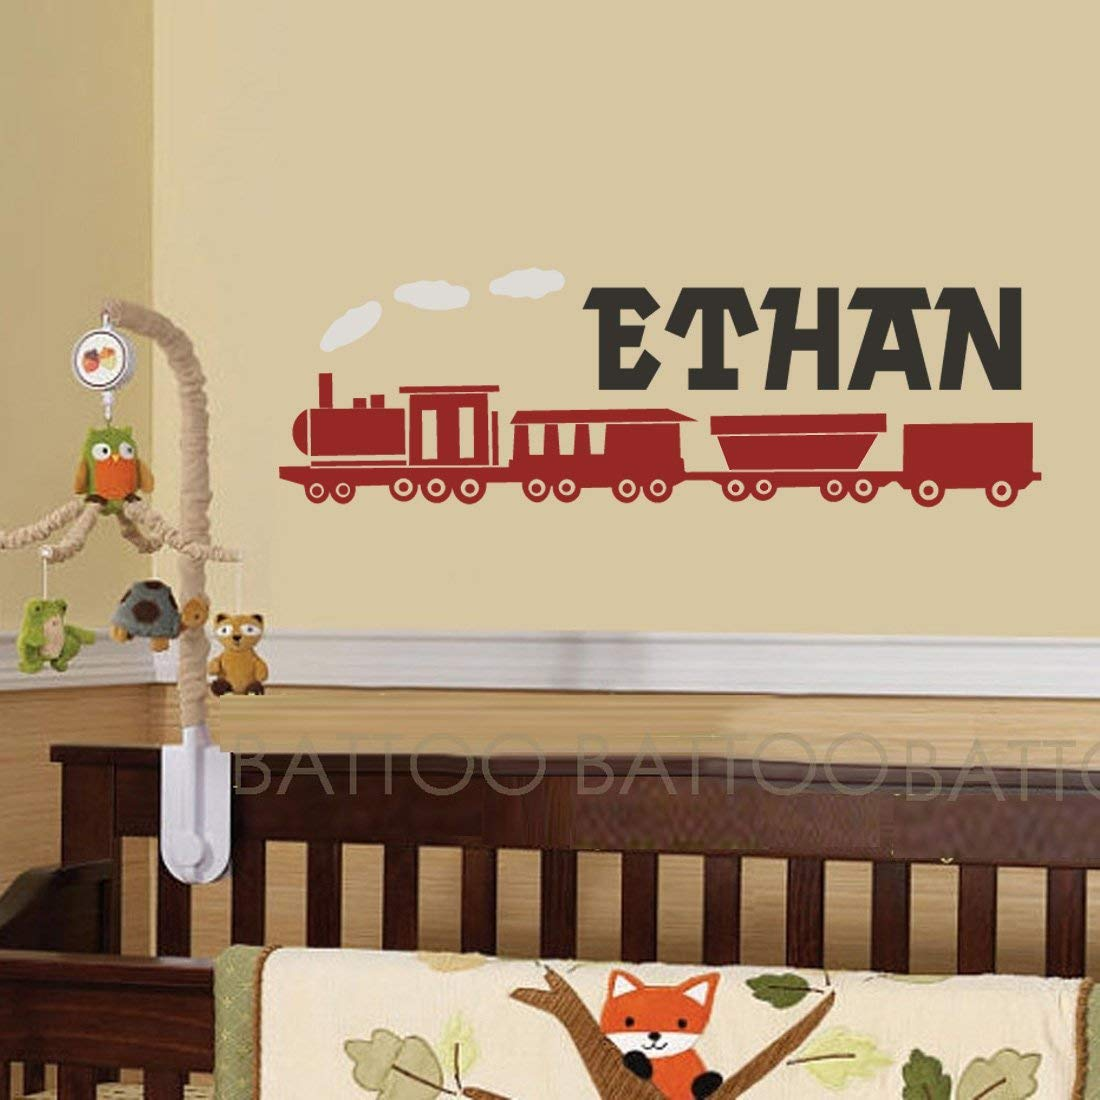 BATTOO Train Wall Decal - Boys Name Wall Decal - Childrens Name Wall Decal - Train Vinyl Wall Decal - Boys Wall Decal - Vinyl Wall Art